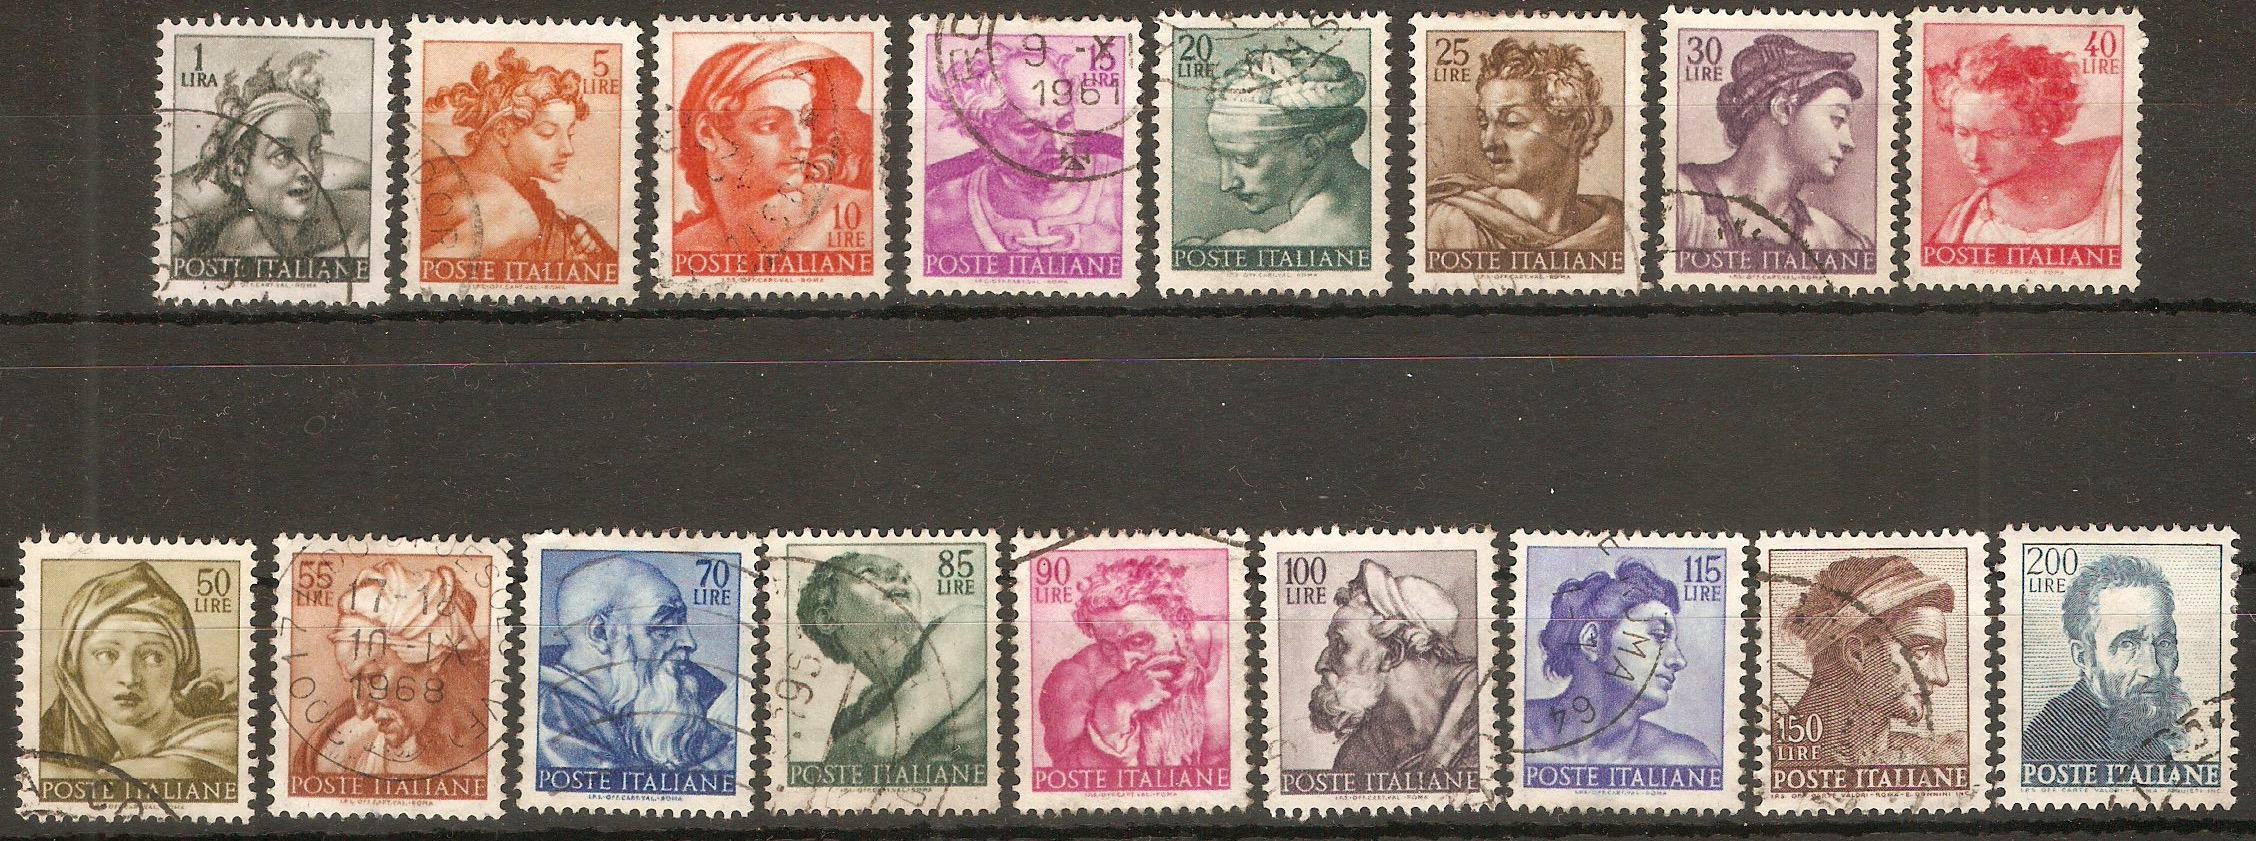 Italy 1961 Works of Michelangelo set. SG1034-SG1050.